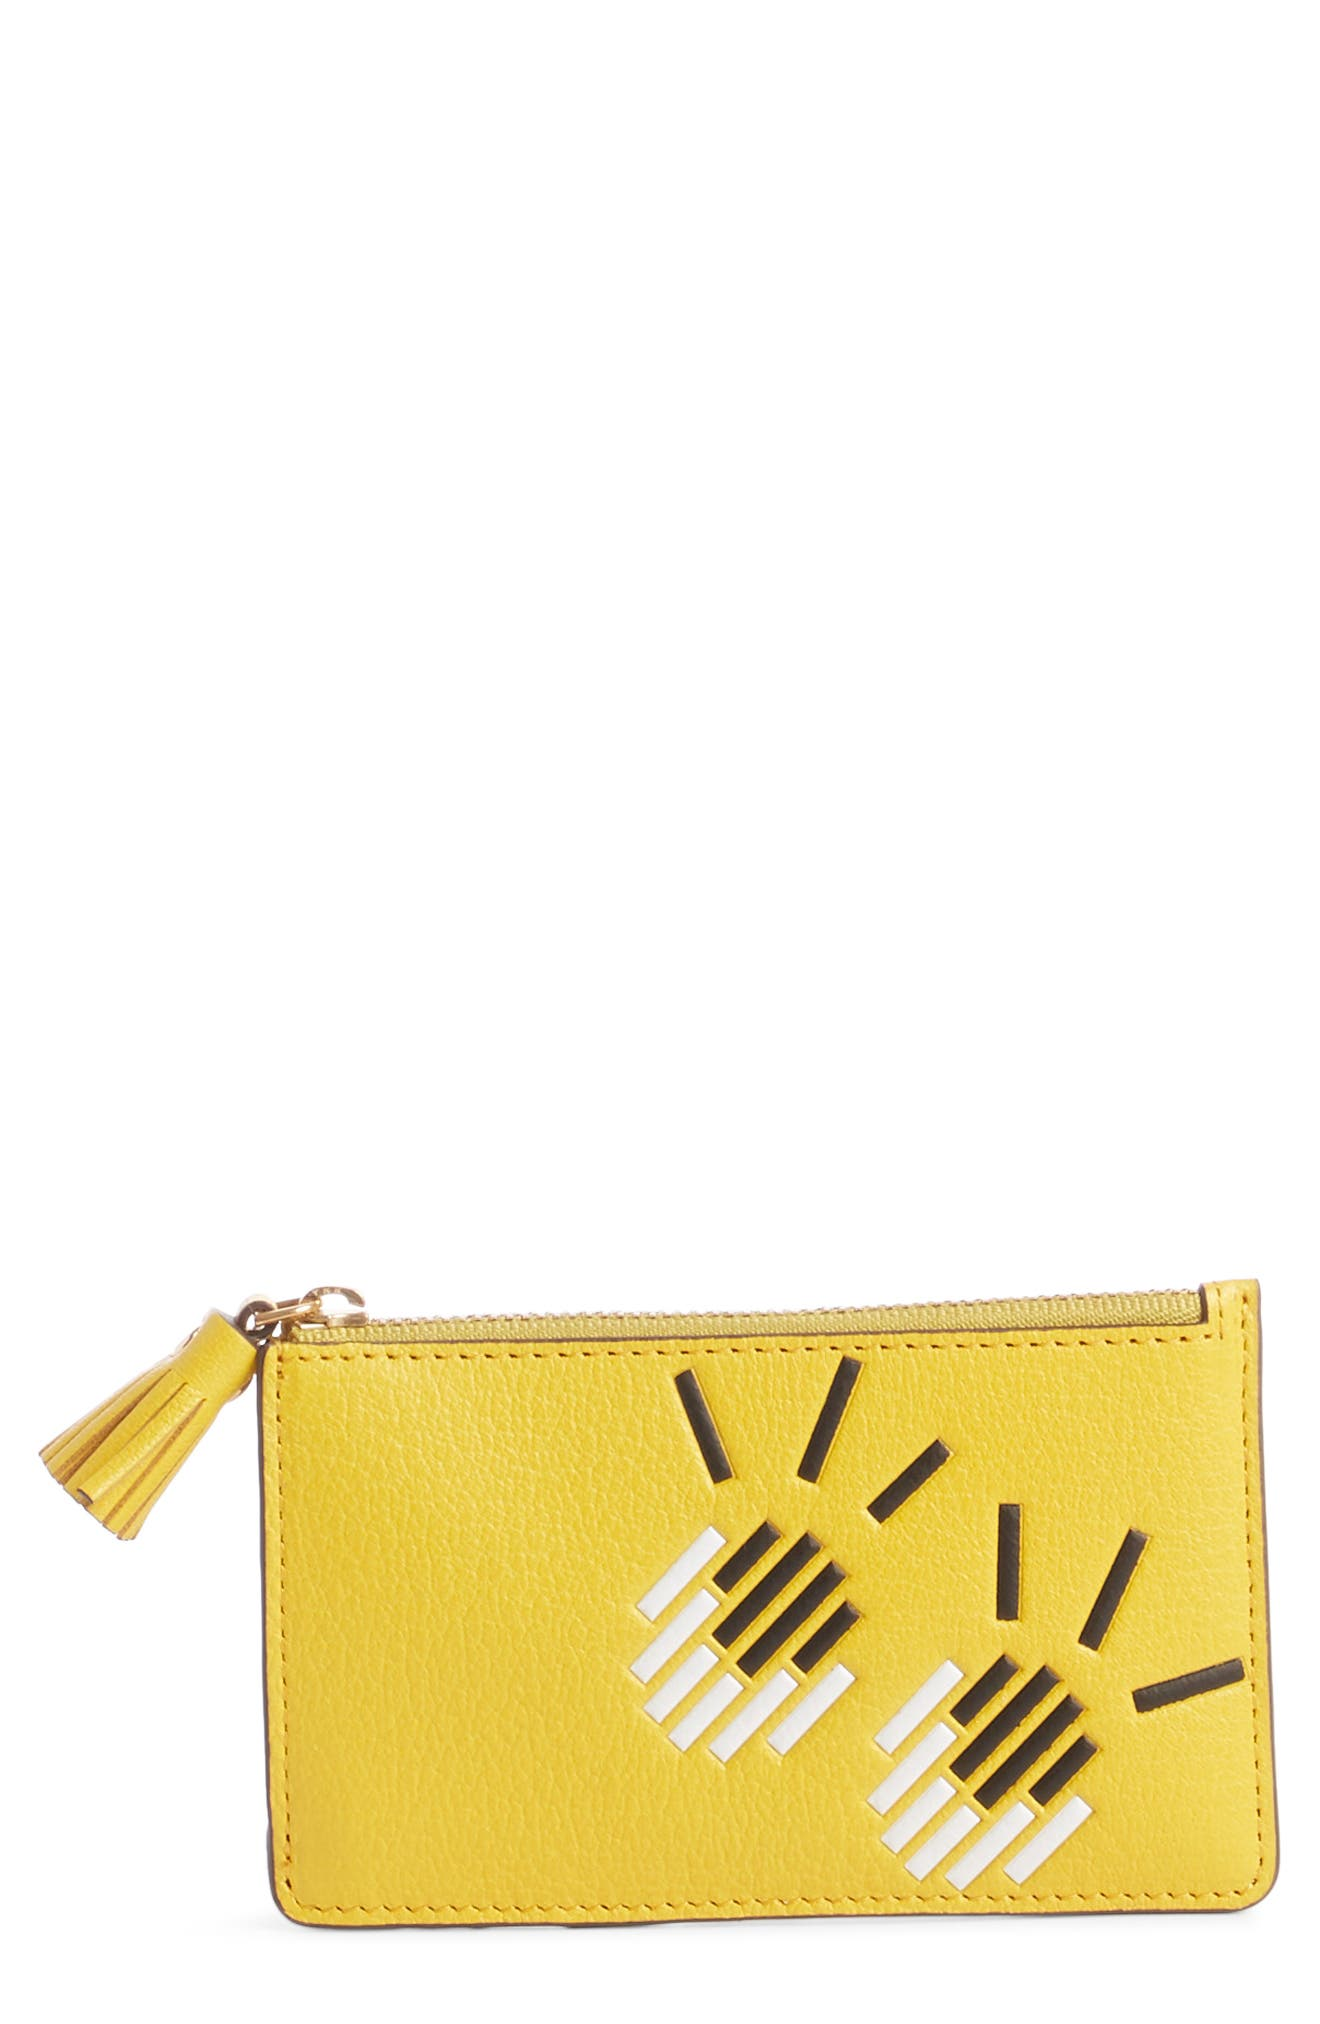 ANYA HINDMARCH, Eyes Leather Card Case, Main thumbnail 1, color, YELLOW